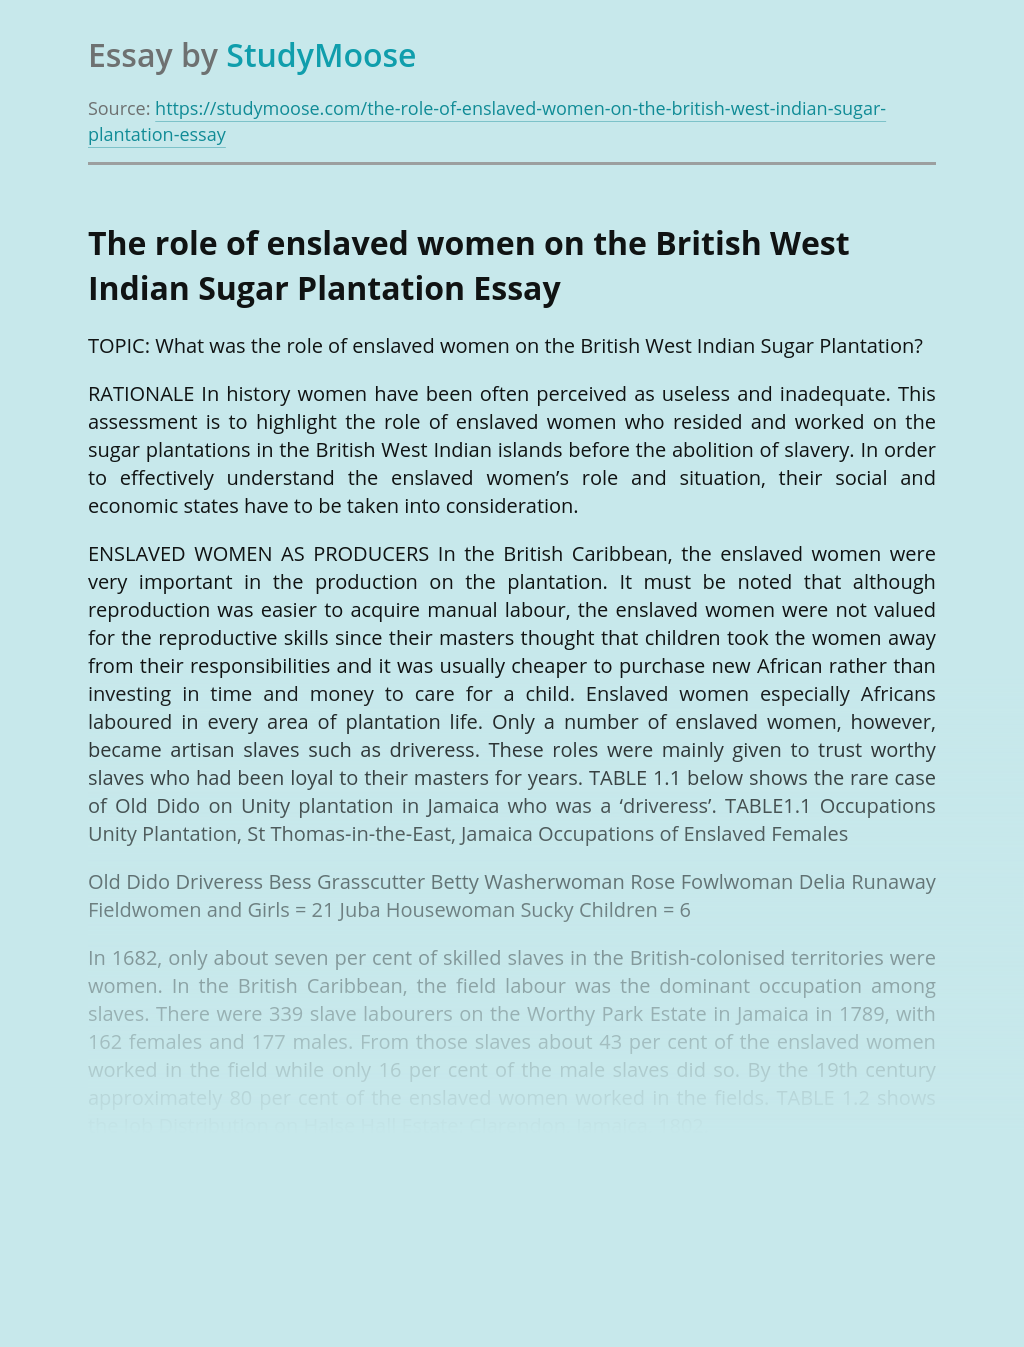 The role of enslaved women on the British West Indian Sugar Plantation